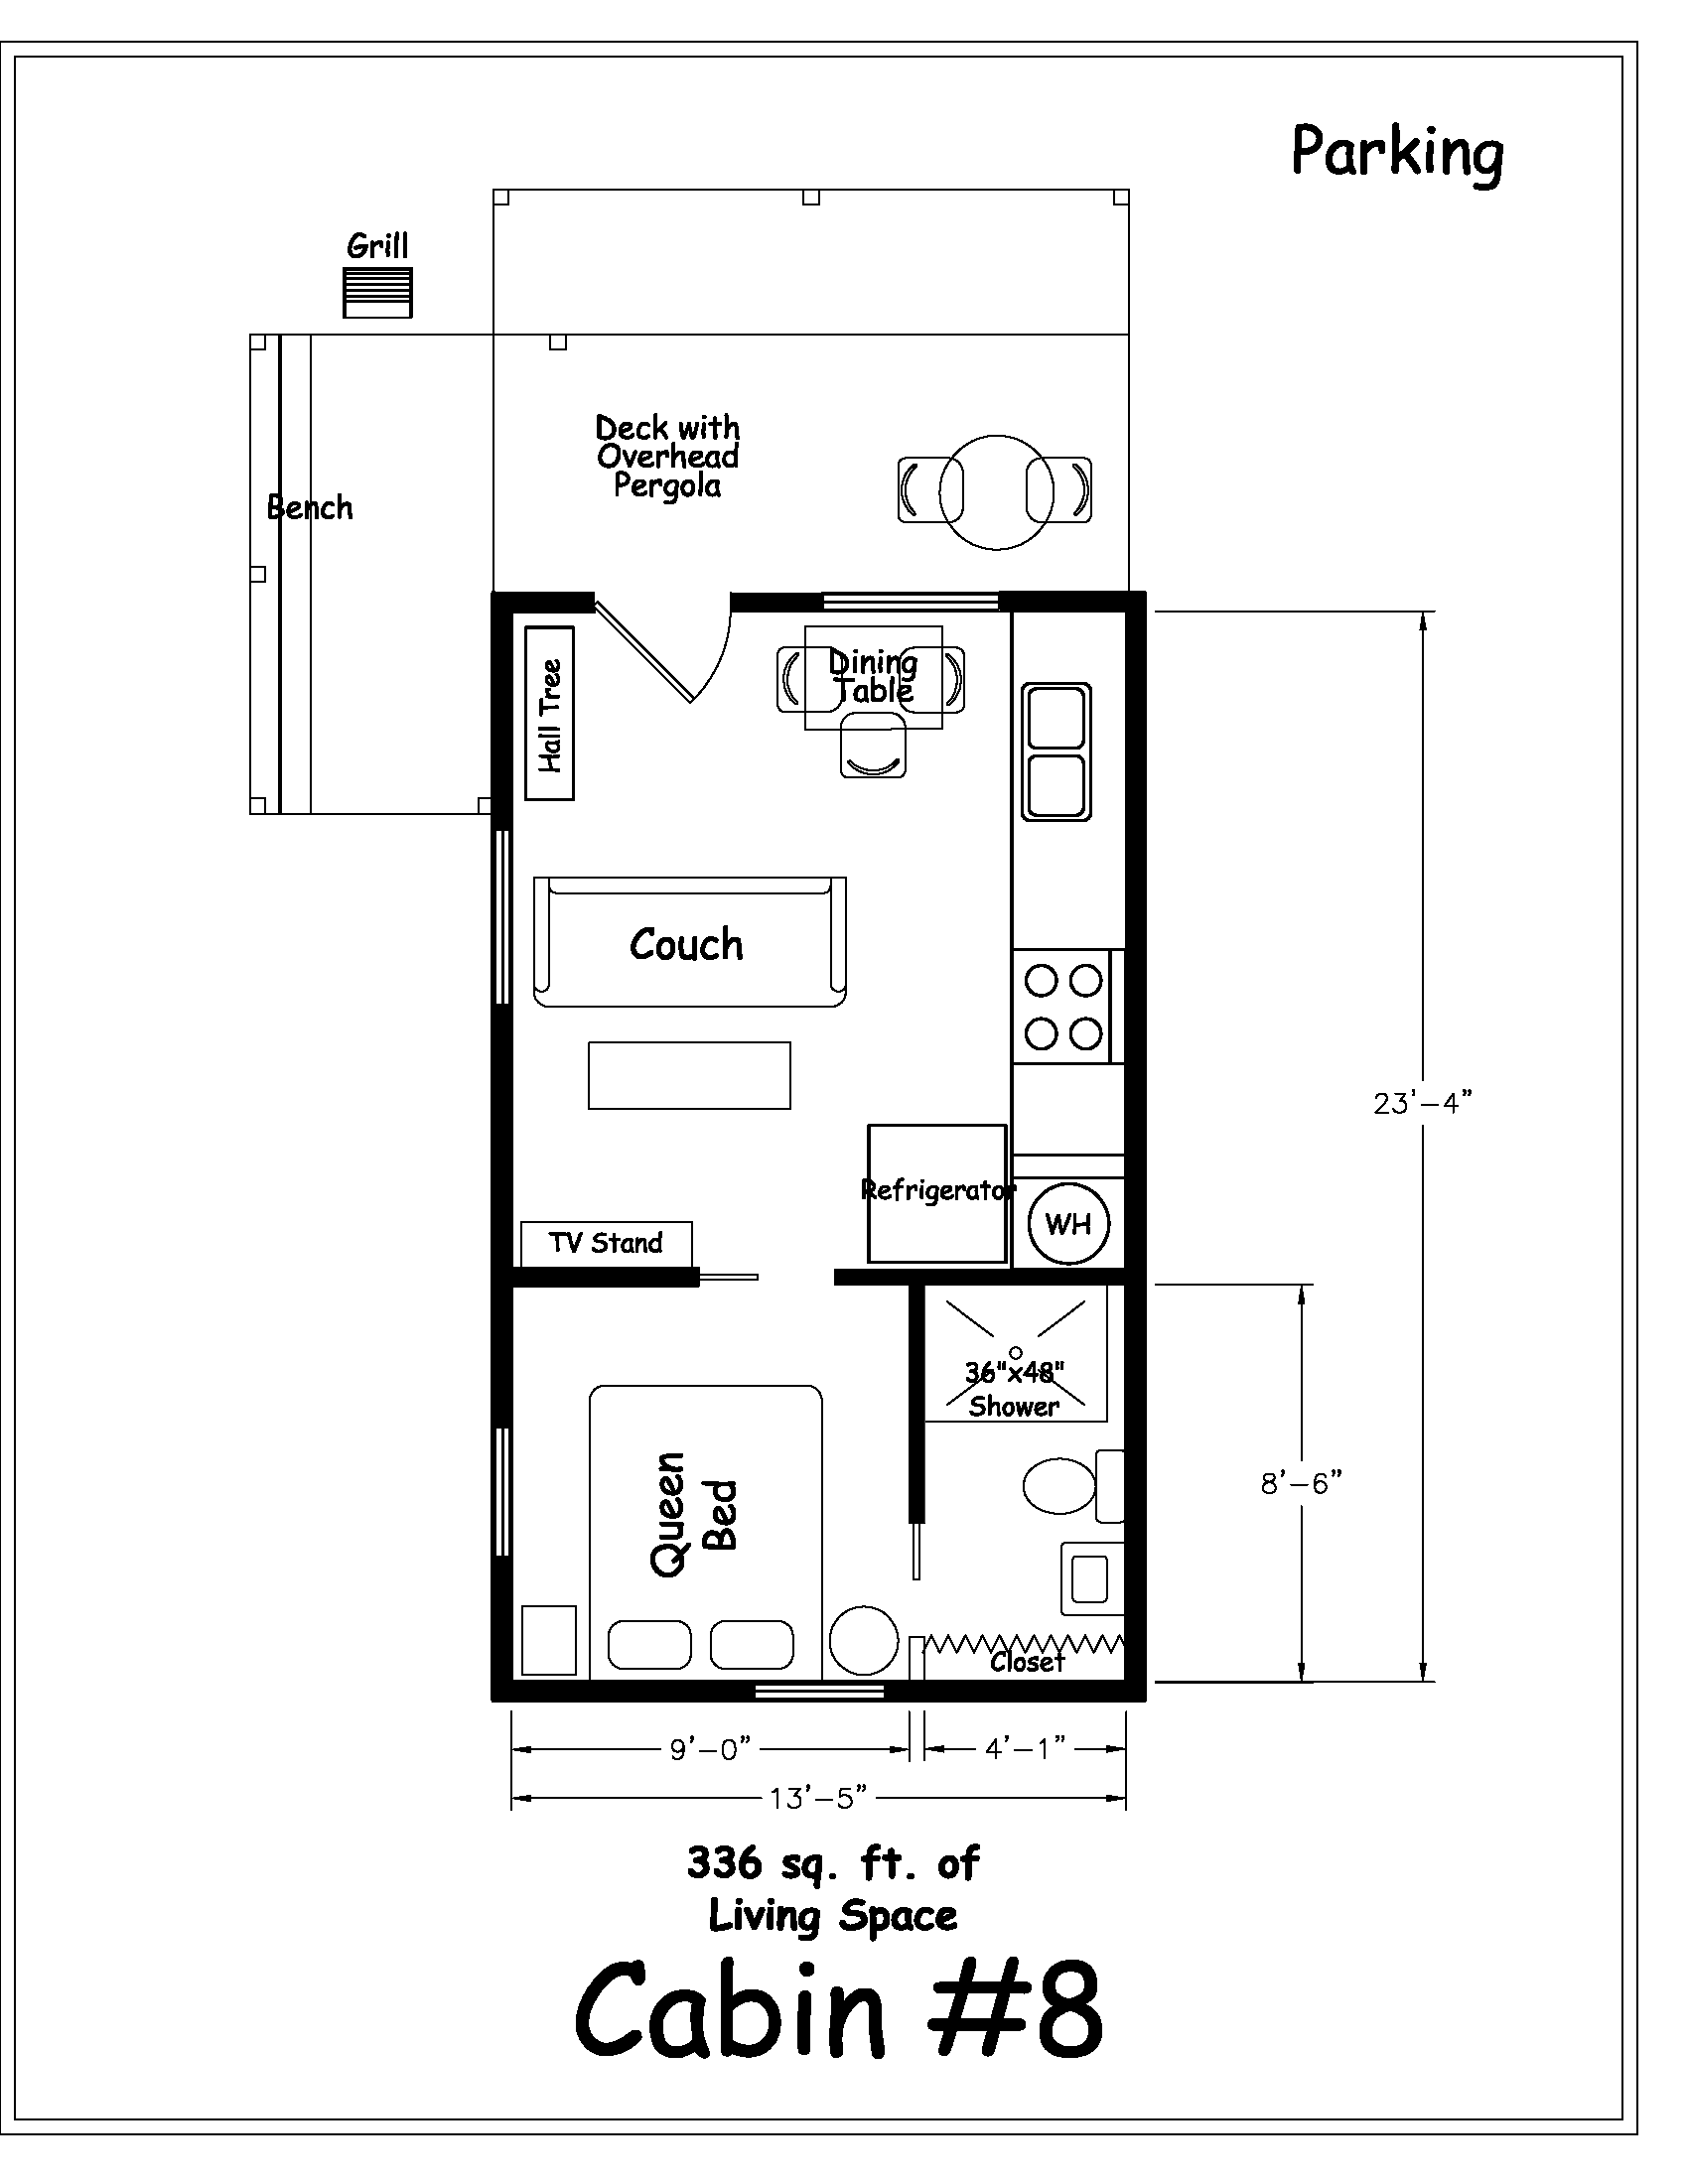 B3cbbd3a41fd04b4 House Plans South Africa House Plans In Zimbabwe as well 74dfcc98ba76927e Simple Cabin Floor Plans Simple Small House Floor Plans in addition Cabin Resort Plans furthermore 6ec887df2ac55e1c Backyard Pool Houses And Cabanas Small Guest House Floor Plans also 89c3bc5cf1aca268 Osborne House Floor Plan Beverly Hills Mansions Floor Plans. on small rustic log home plans